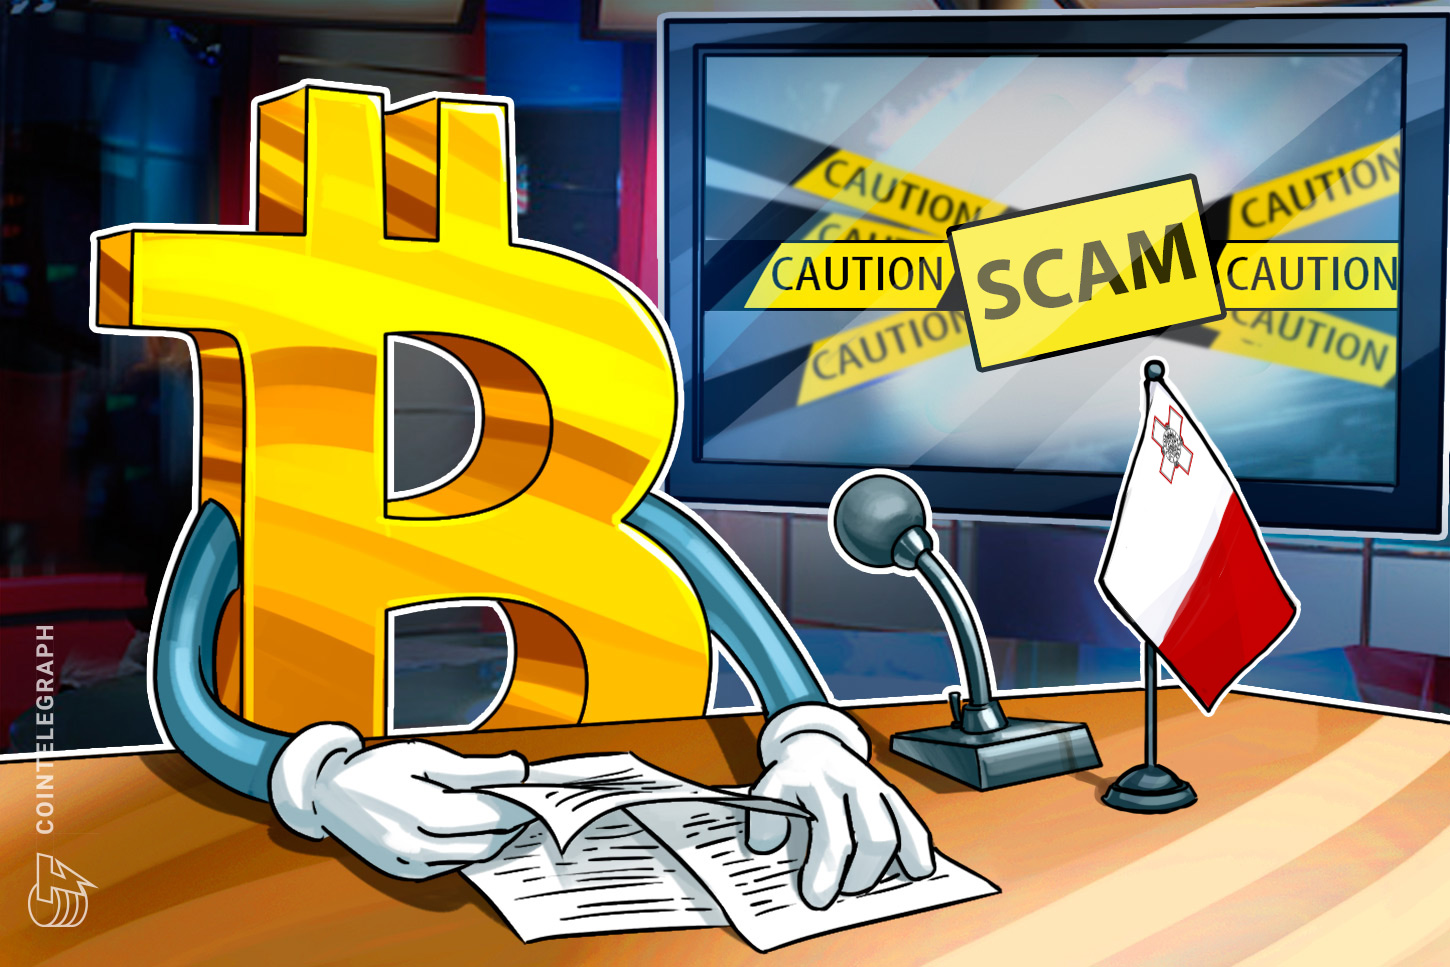 10 Common Bitcoin Scams (And How To Avoid Them) - Finder for Beginners